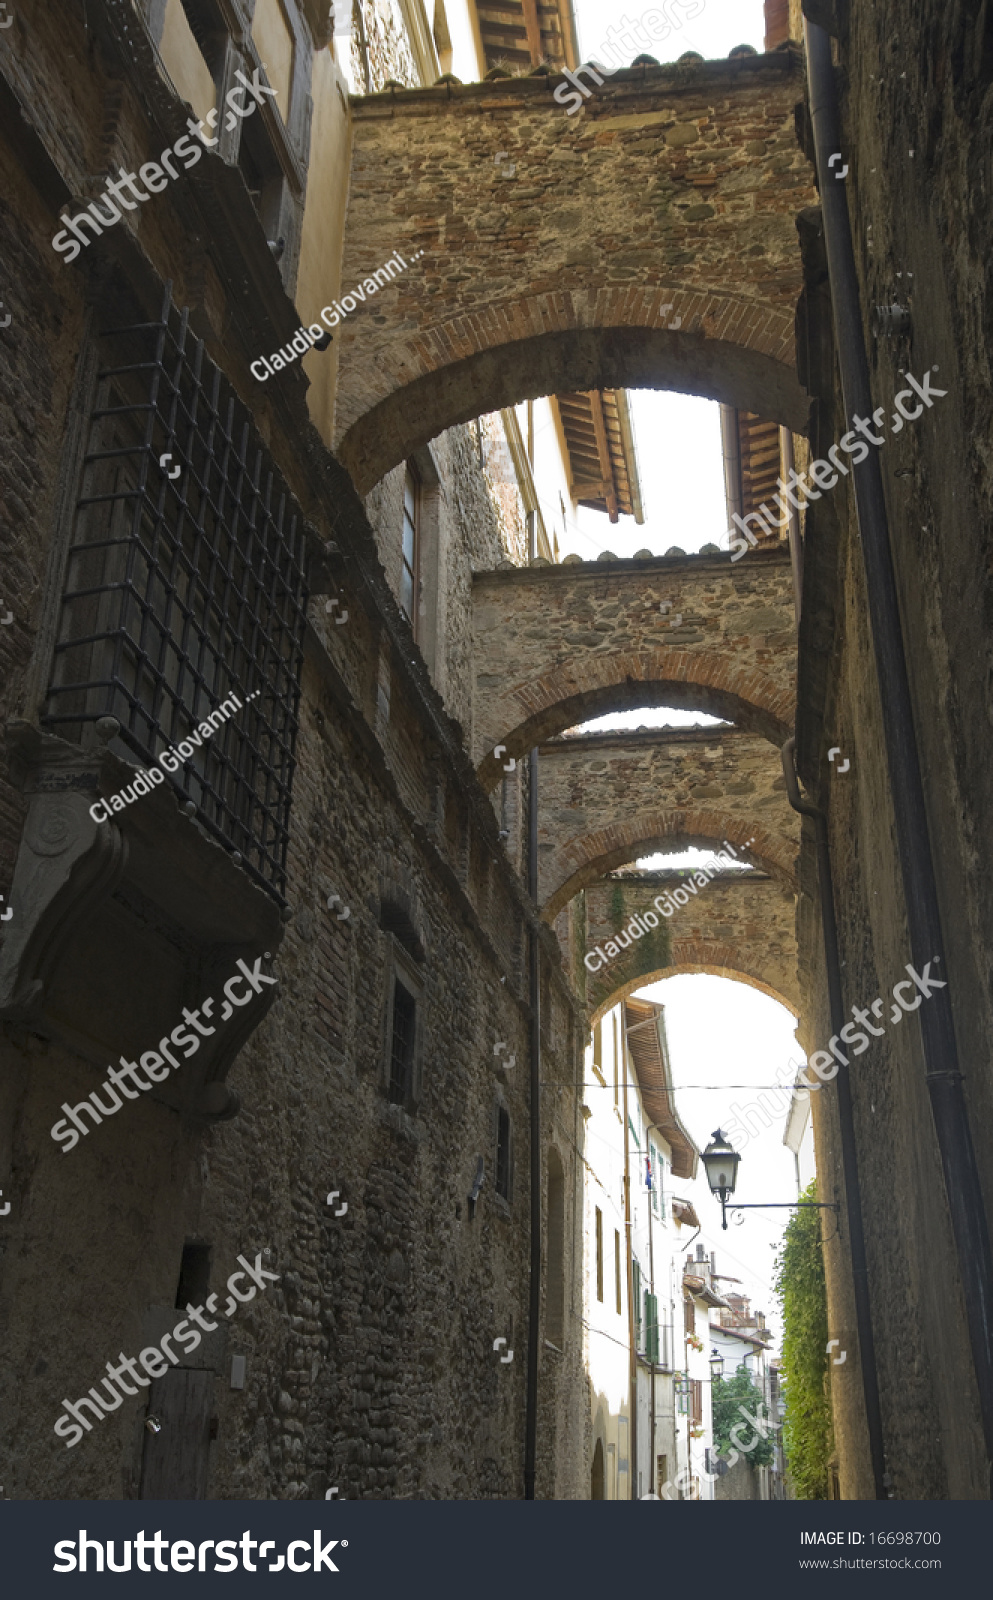 Sansepolcro Italy  City pictures : Sansepolcro Arezzo, Tuscany, Italy Old Street With Arches Stock ...